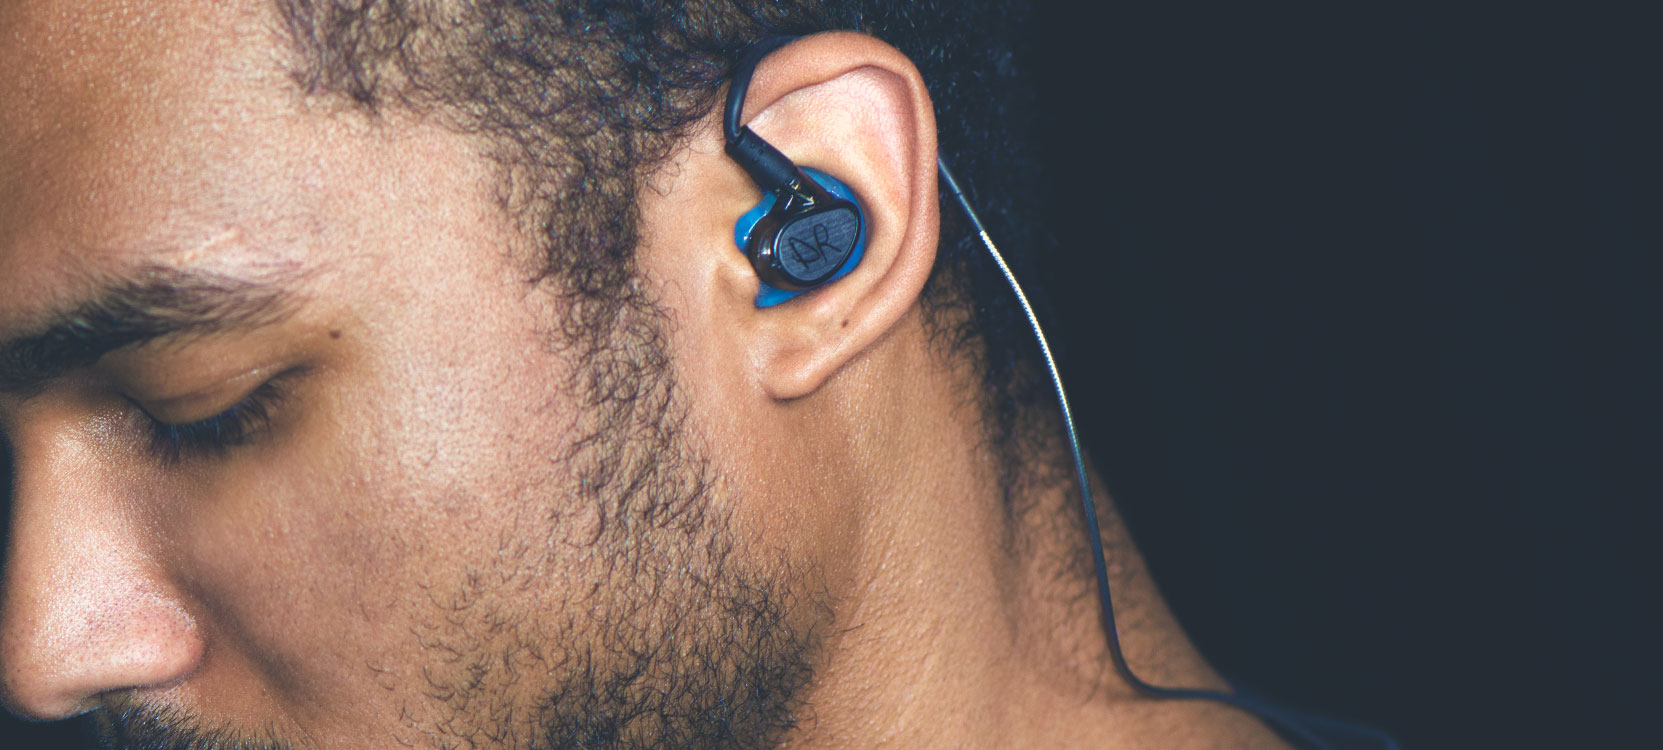 Man wearing MX PRO custom IEMs with blue eartips and engraved artwork